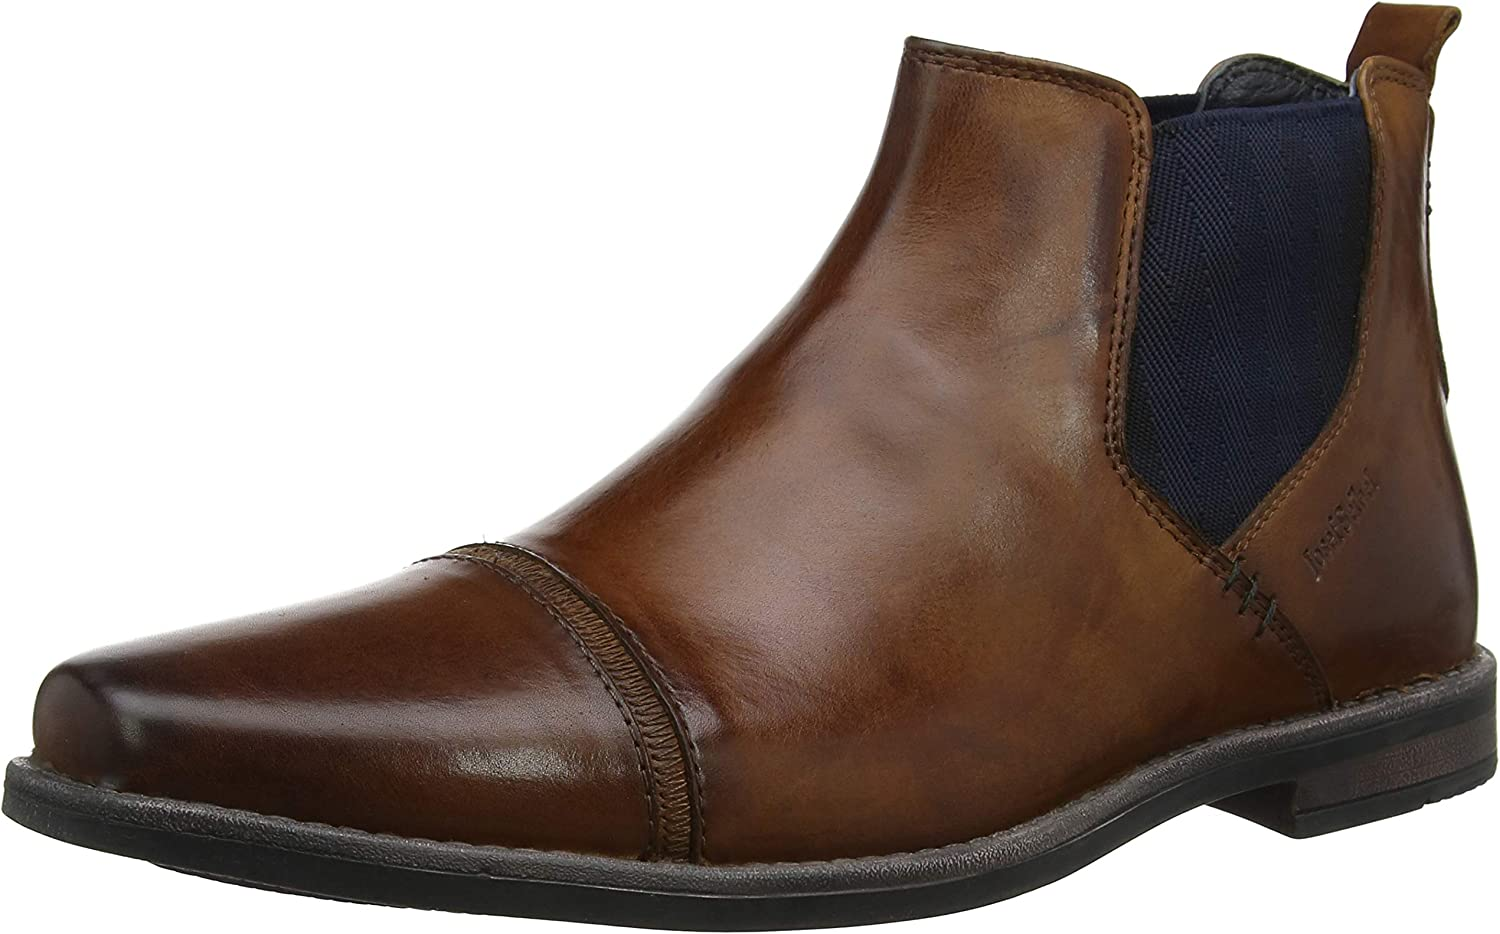 Joseph Seibel Men's Andrew 23 Slip On Dress Chelsea Boot